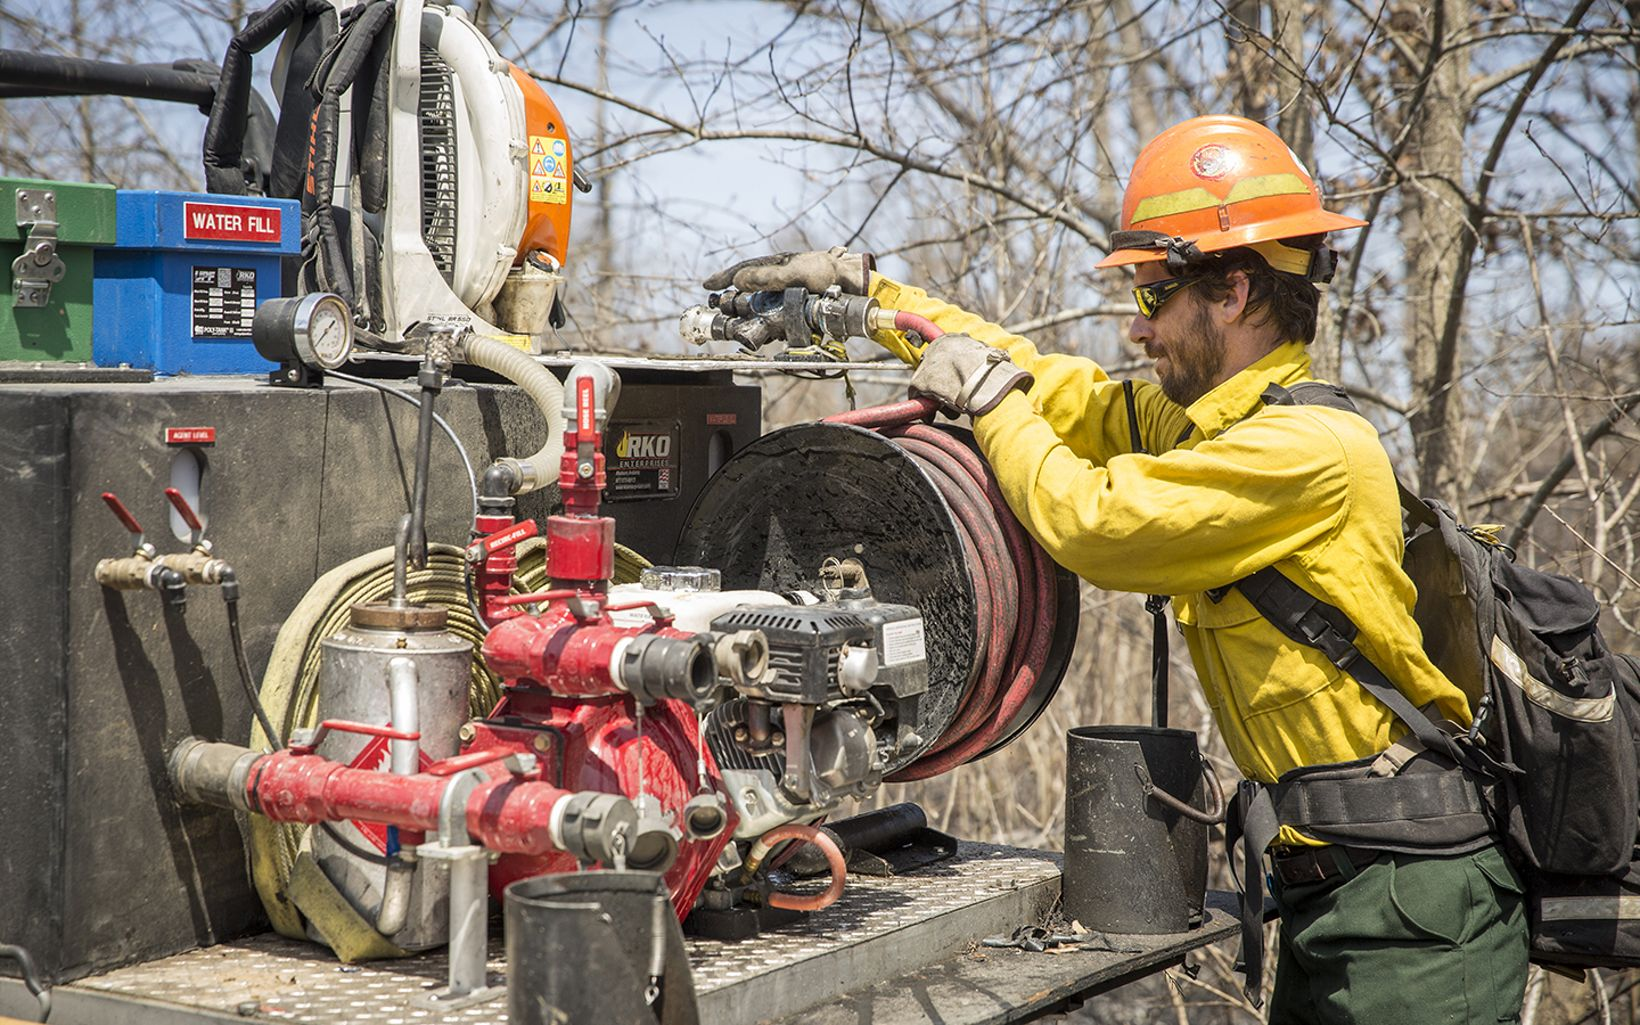 A TNC employee checks a water hose before a prescribed fire.